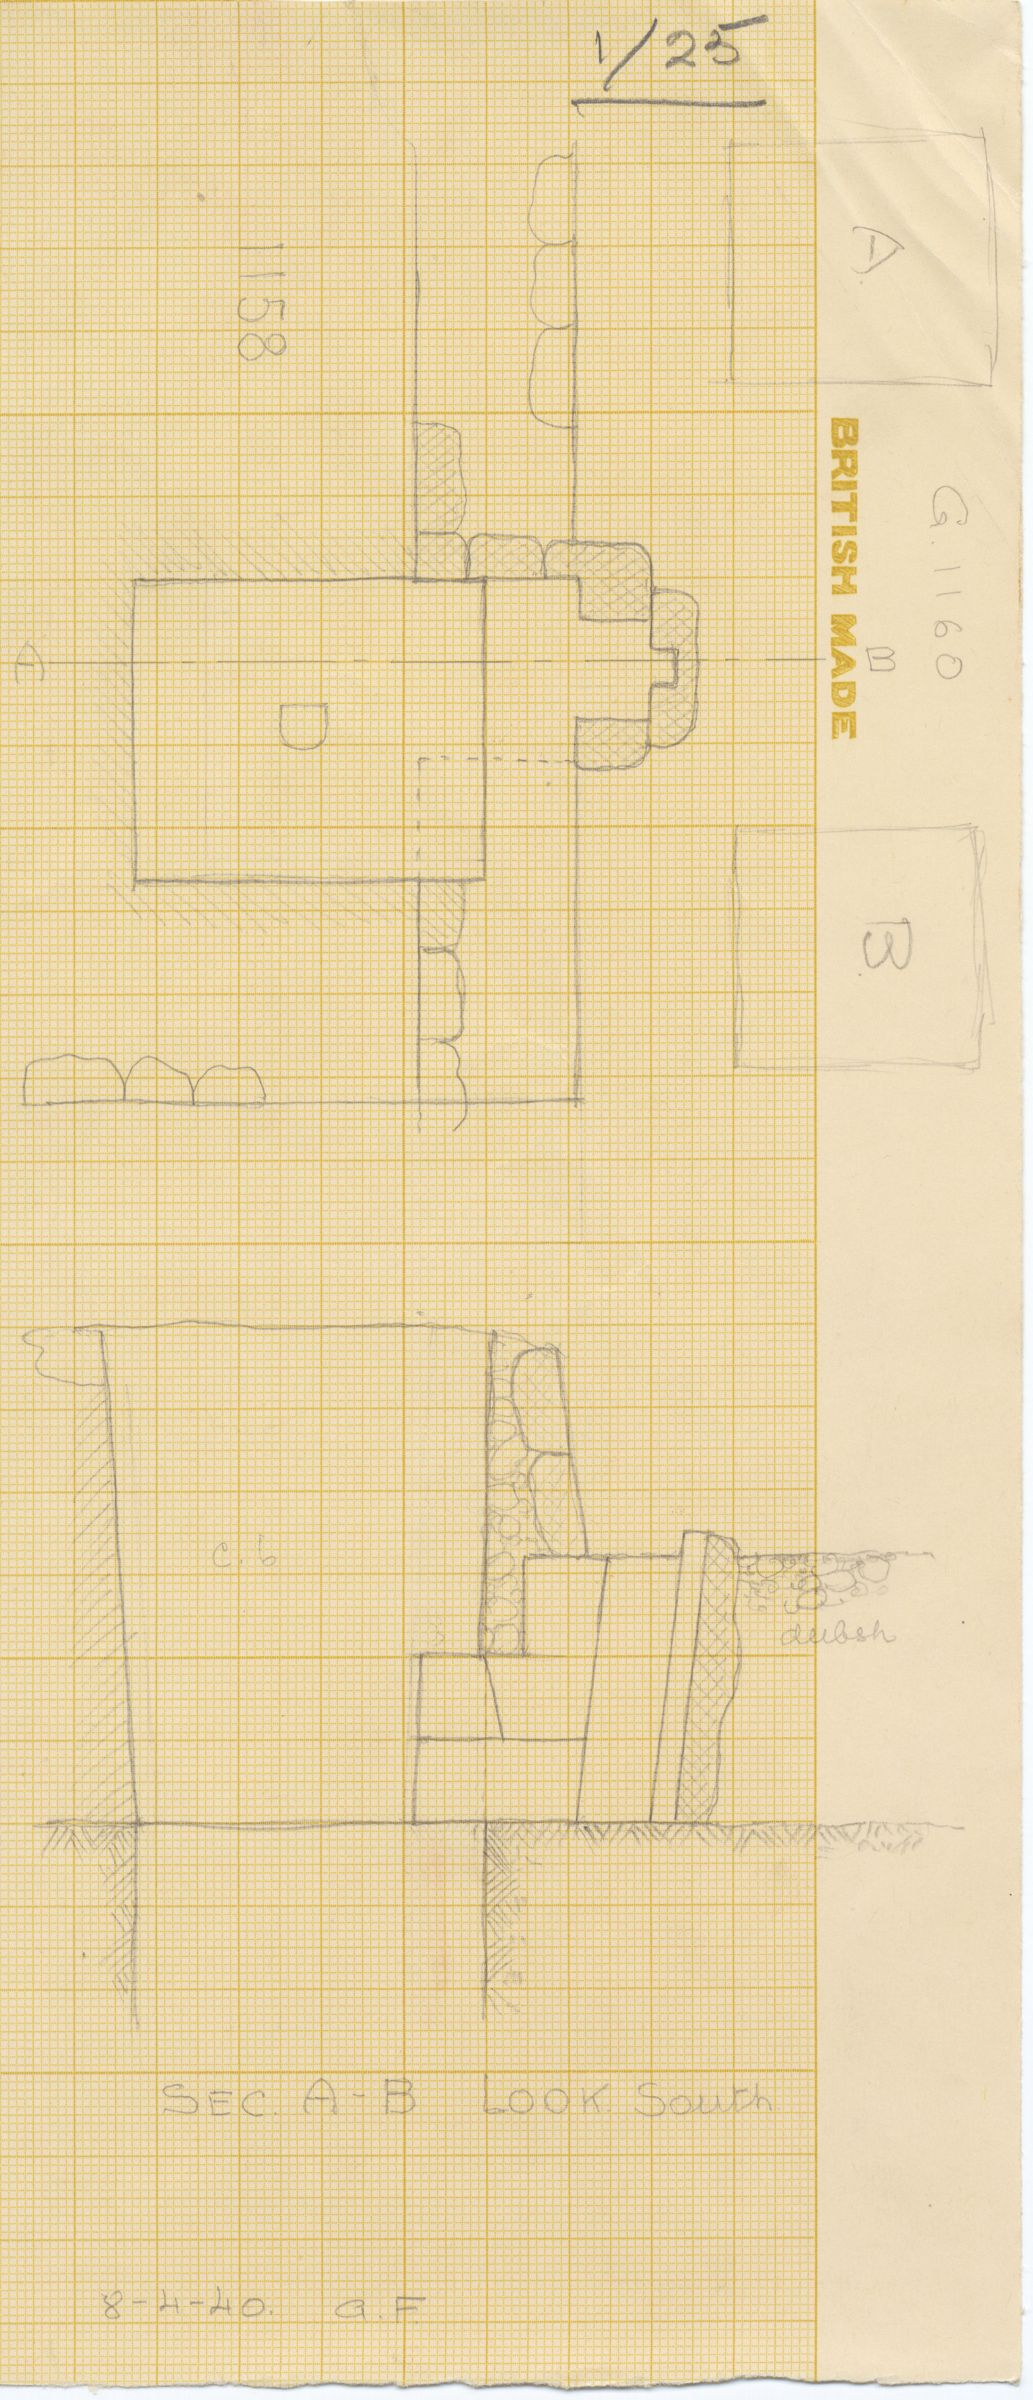 Maps and plans: Partial plan and section of G 1158 and G 1160